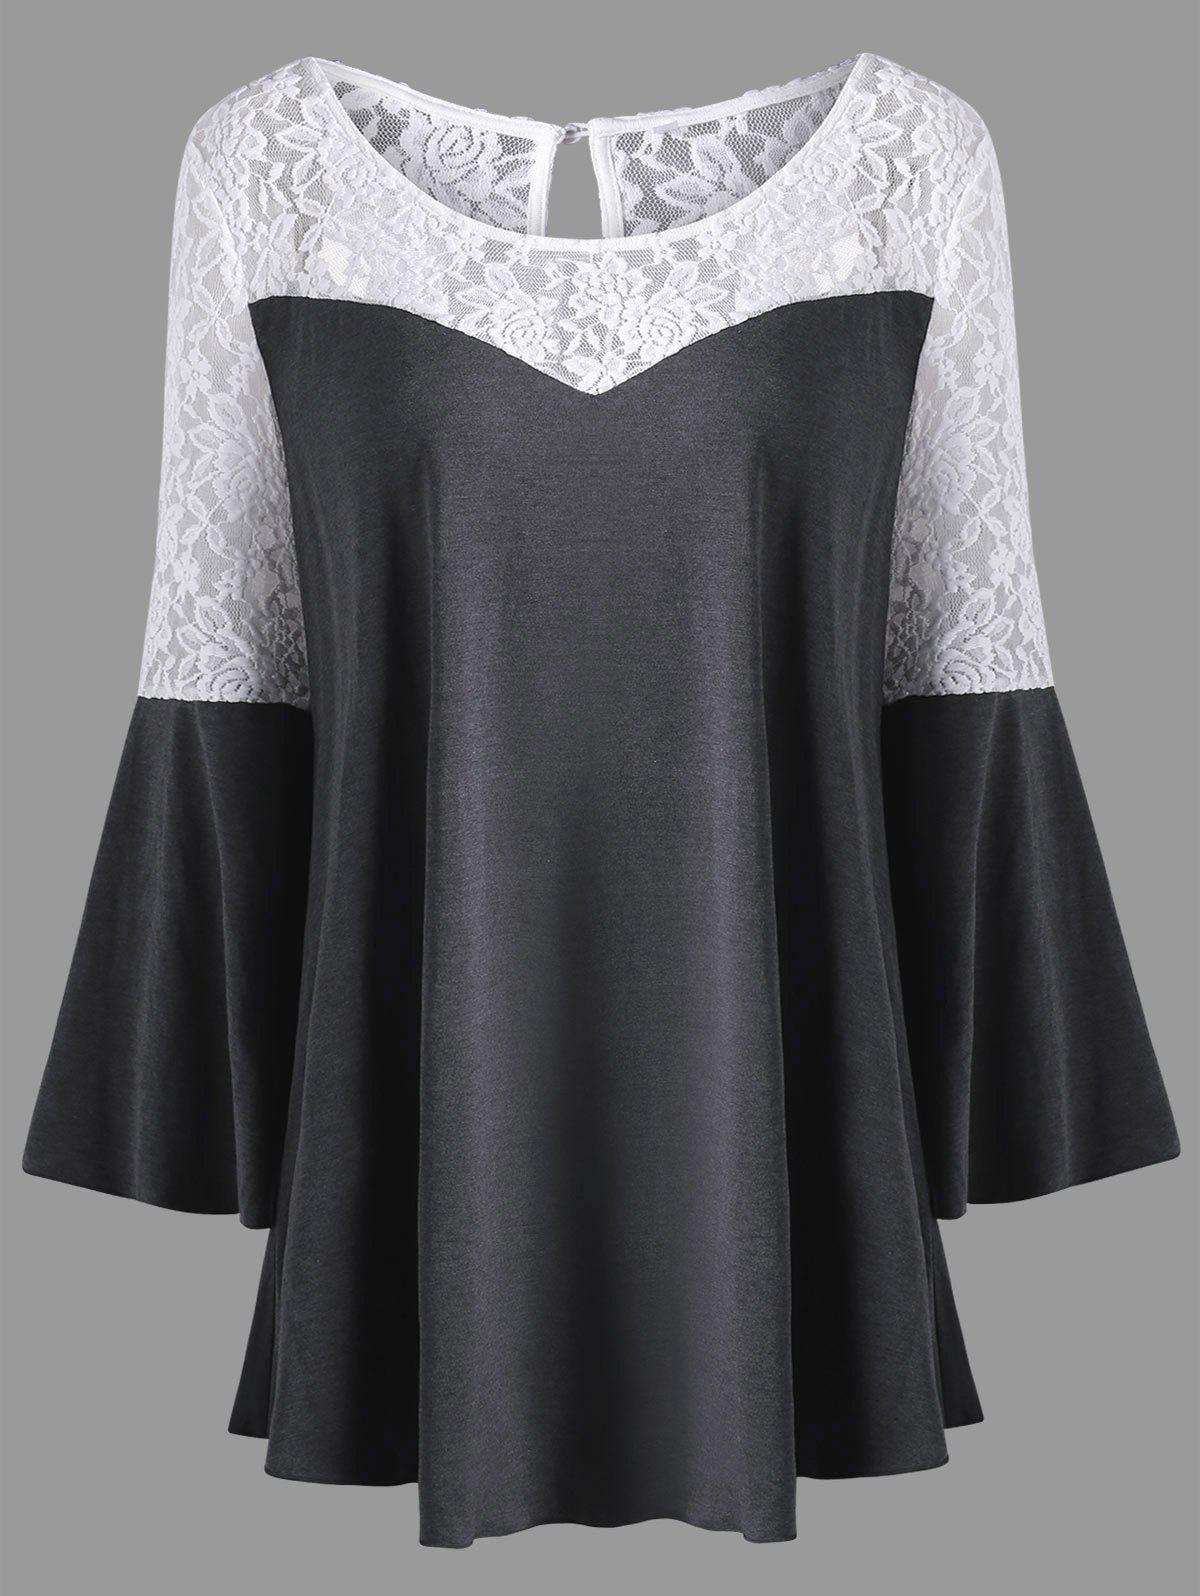 Plus Size Lace Panel Flare Sleeve TopWOMEN<br><br>Size: 2XL; Color: COLORMIX; Material: Polyester,Spandex; Shirt Length: Long; Sleeve Length: Full; Collar: Scoop Neck; Style: Fashion; Season: Fall,Spring; Sleeve Type: Flare Sleeve; Embellishment: Lace,Panel; Pattern Type: Others; Weight: 0.3000kg; Package Contents: 1 x Blouse;